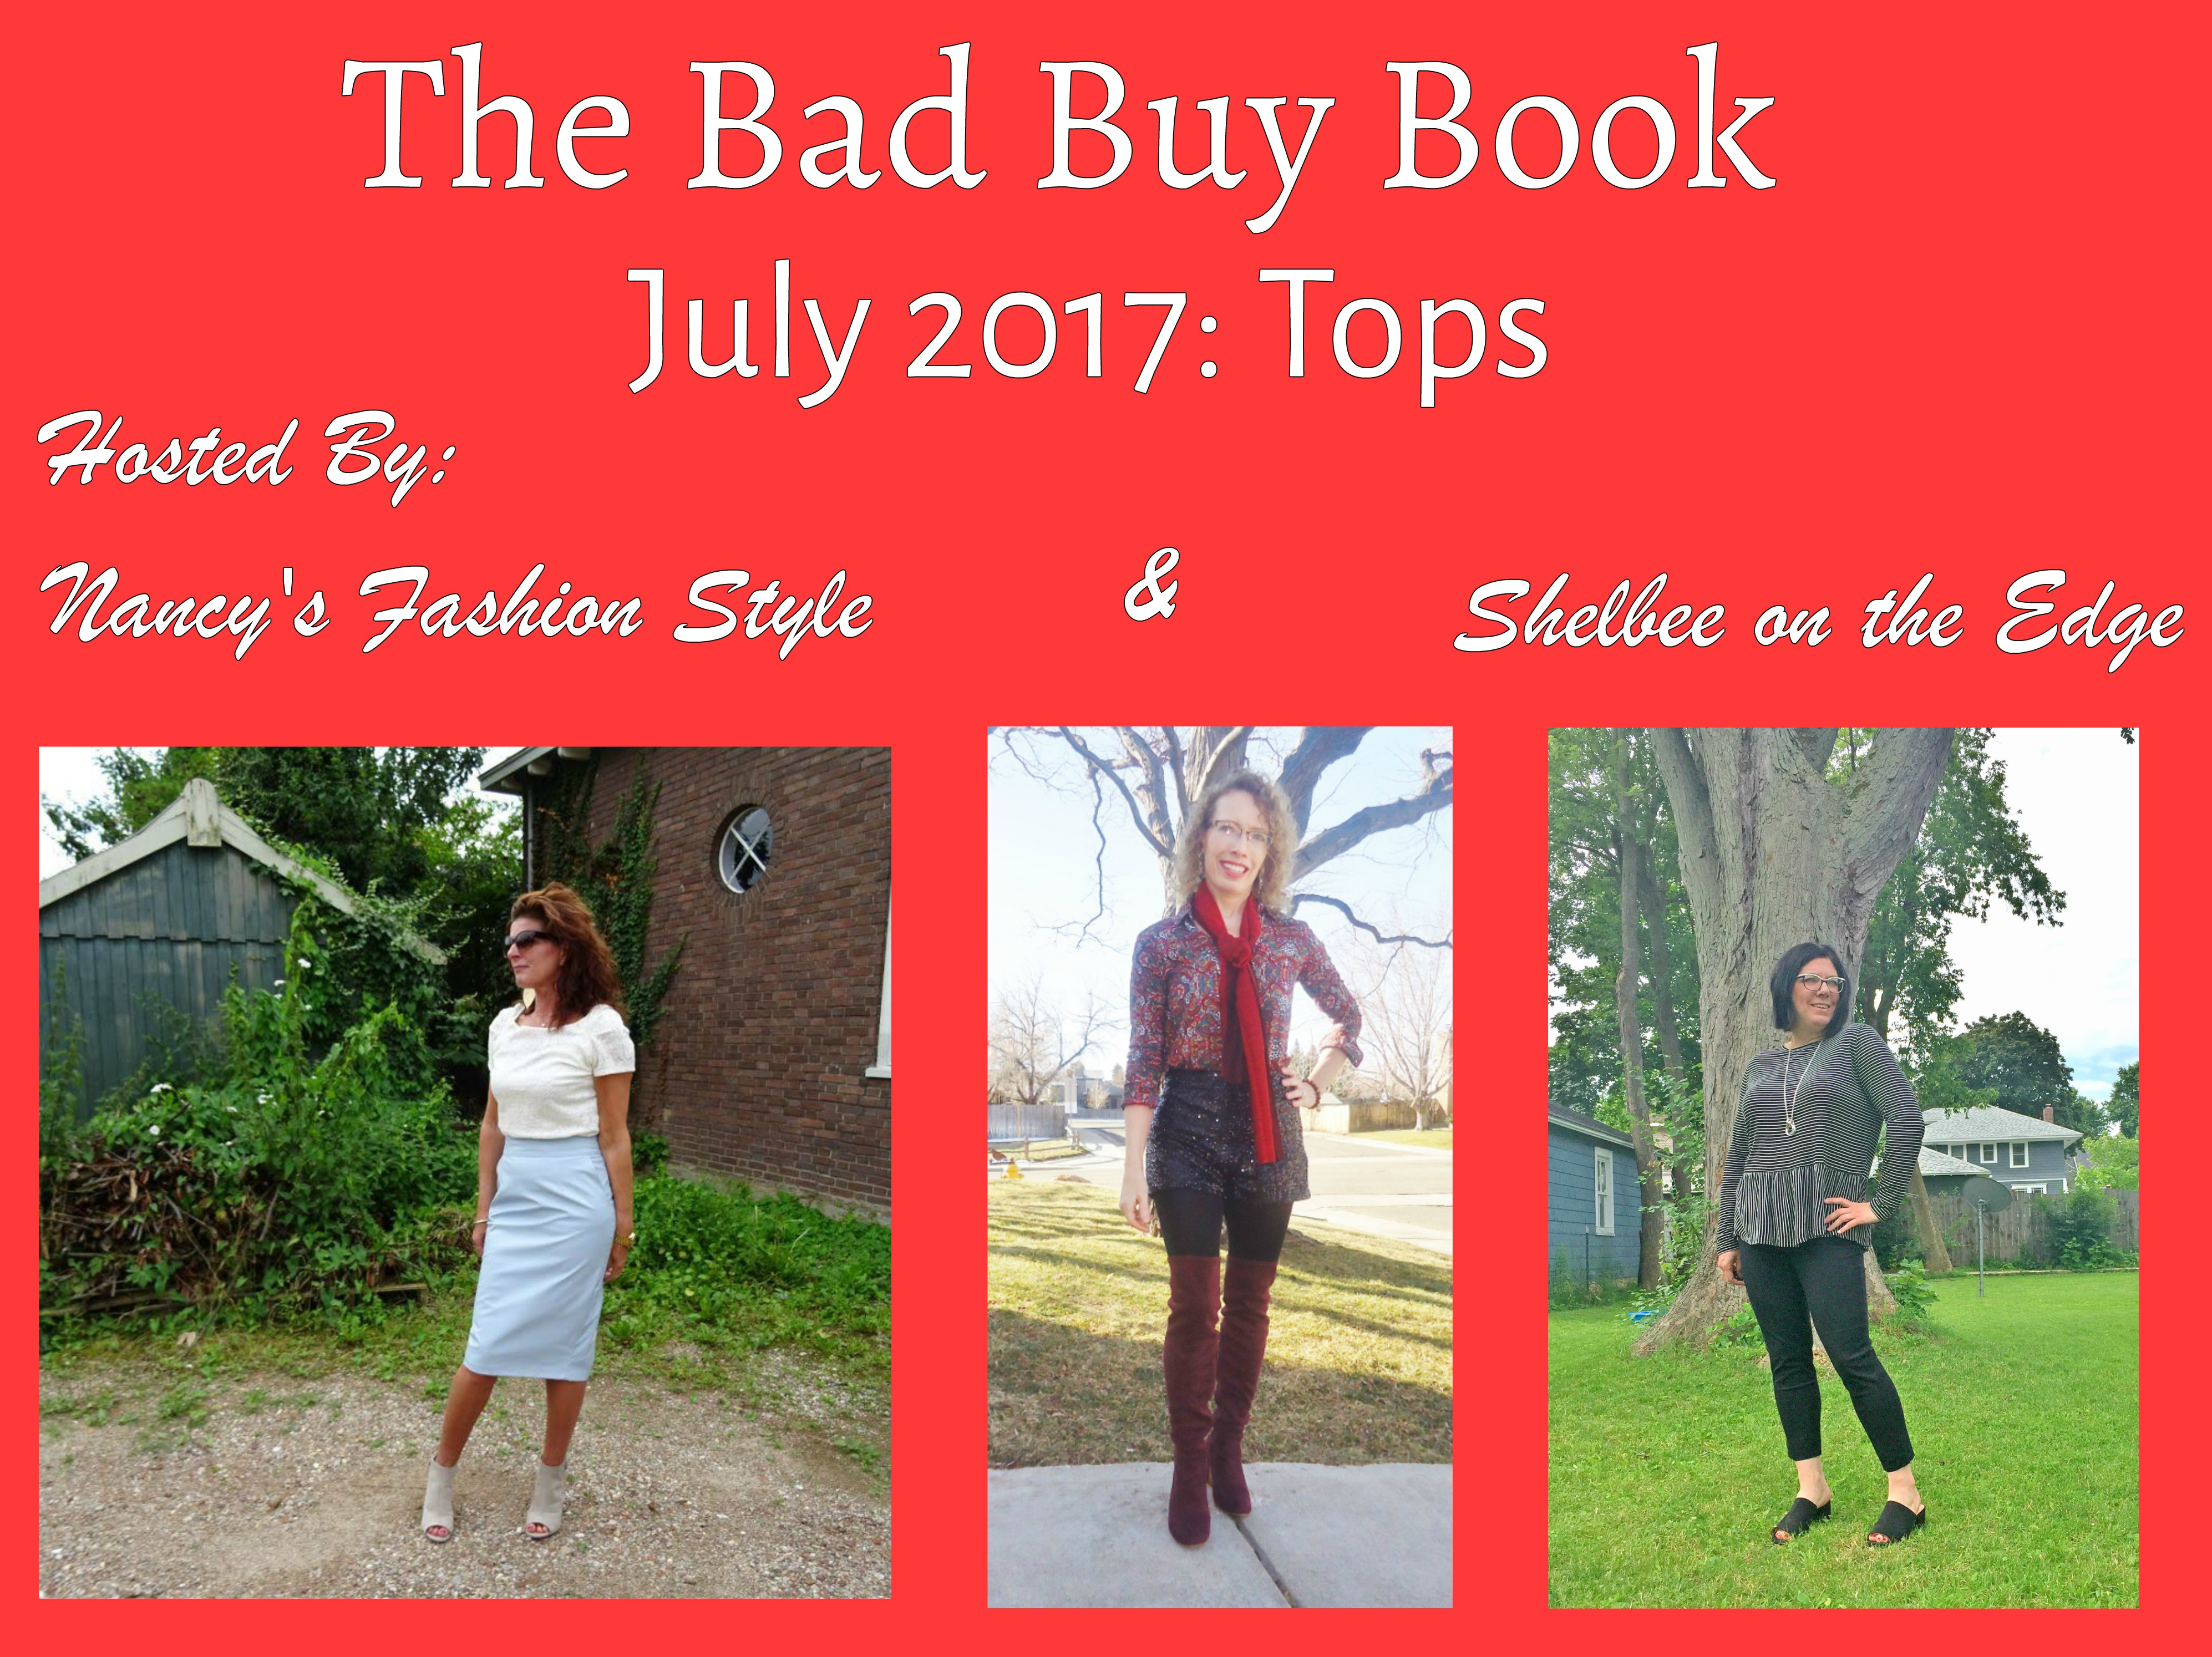 The Bad Buy Book: July 2017-Tops